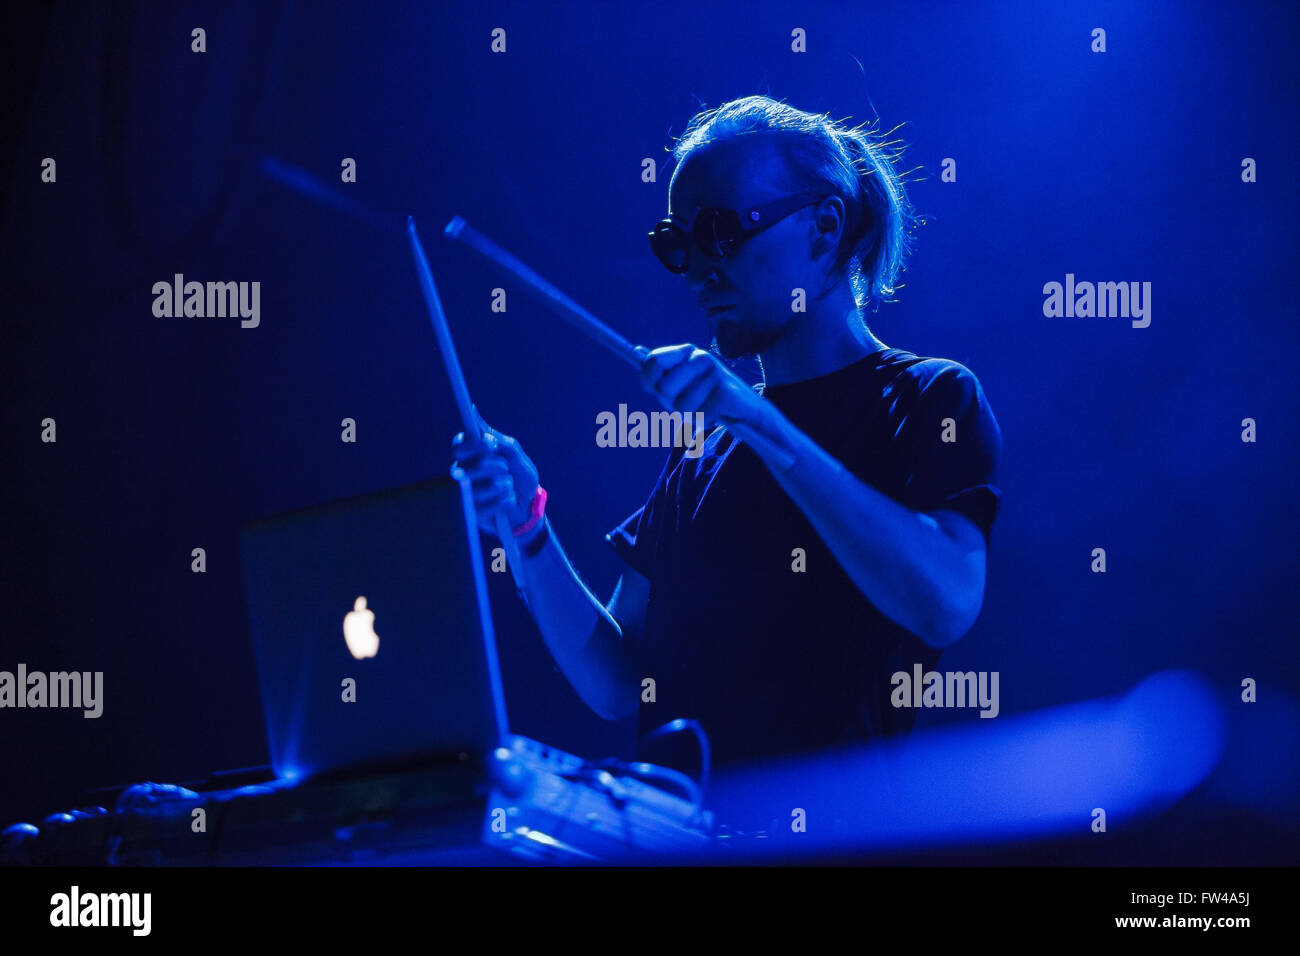 MOSCOW - 30 MARCH, 2016 - Ic3peak warming up on stage before famous trip hop singer Tricky in Yotaspace club - Stock Image